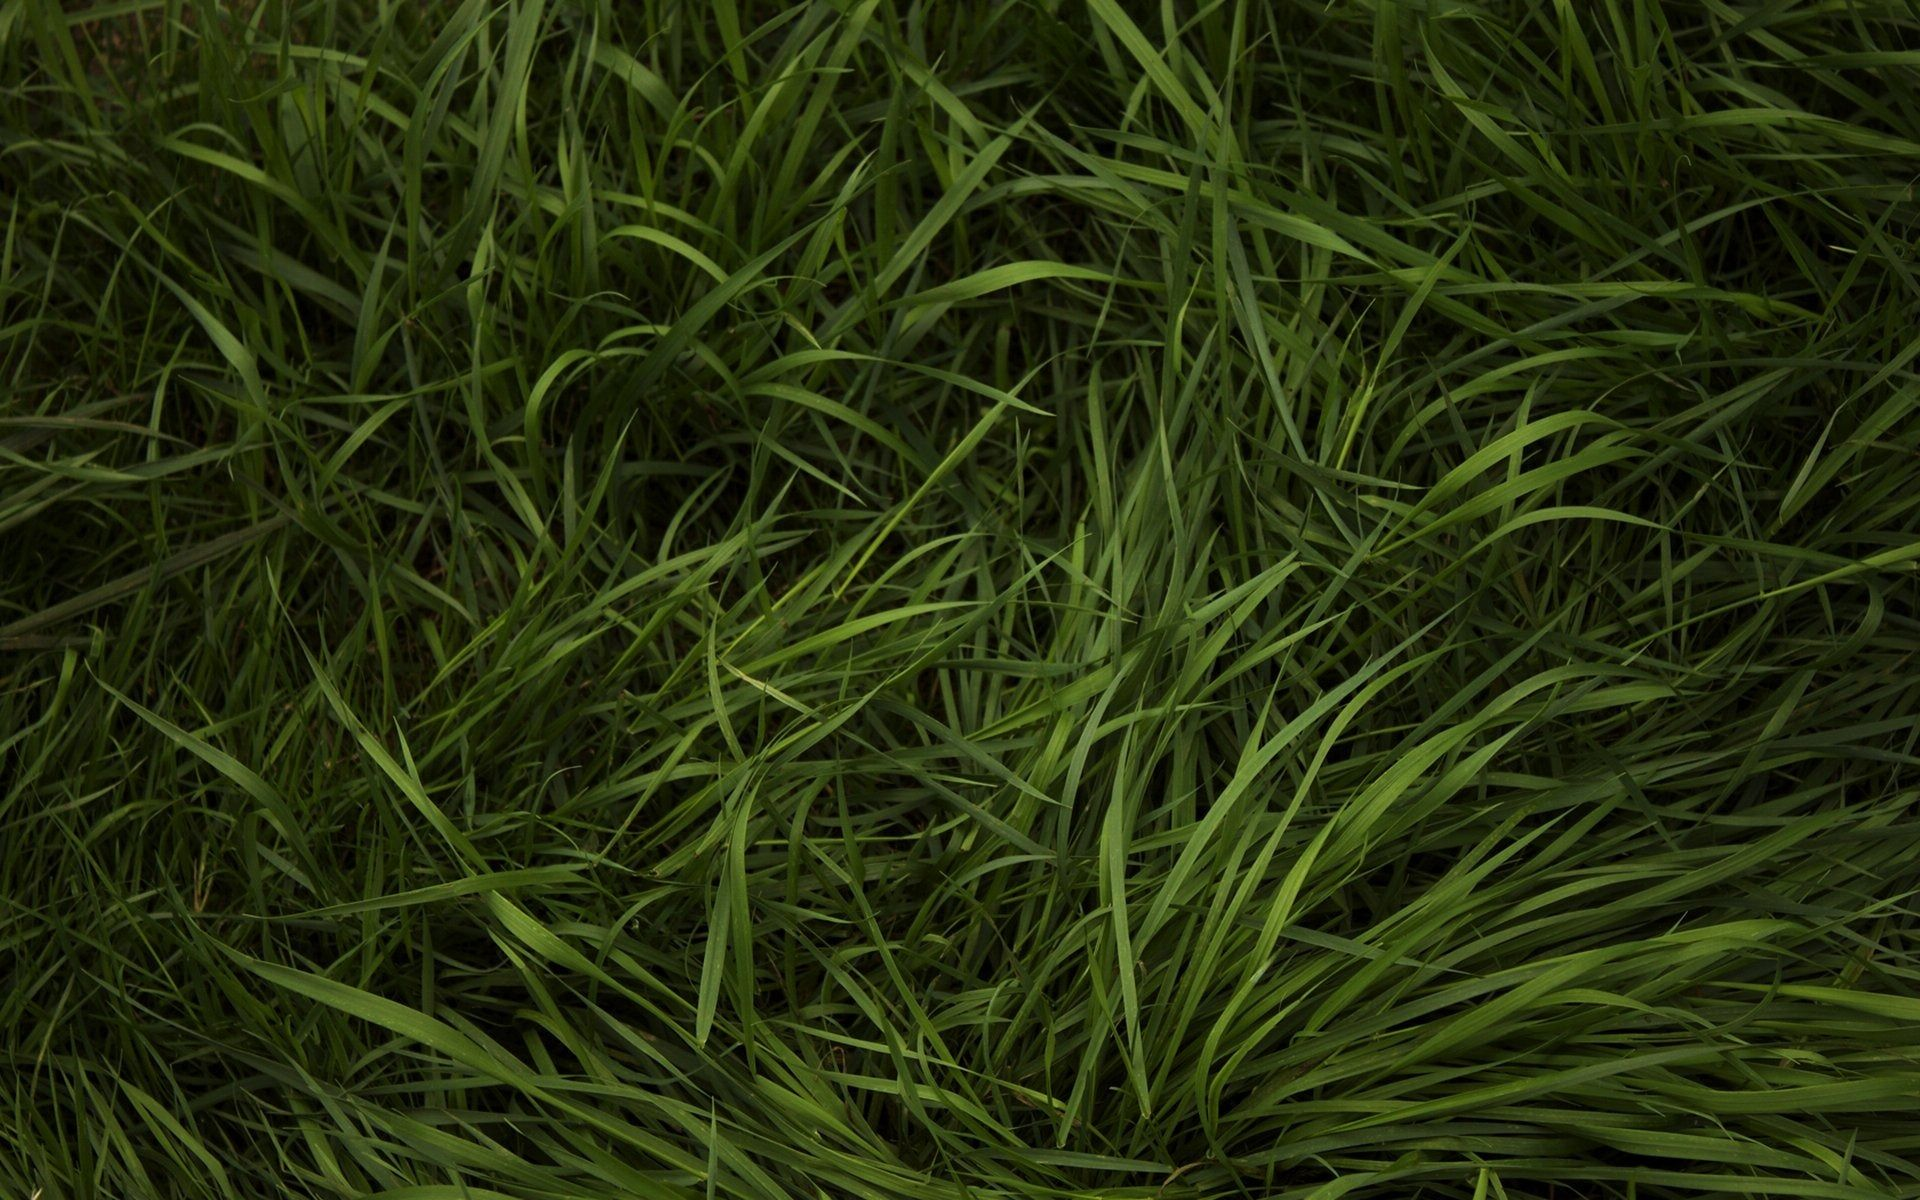 Grass Texture Wallpaper